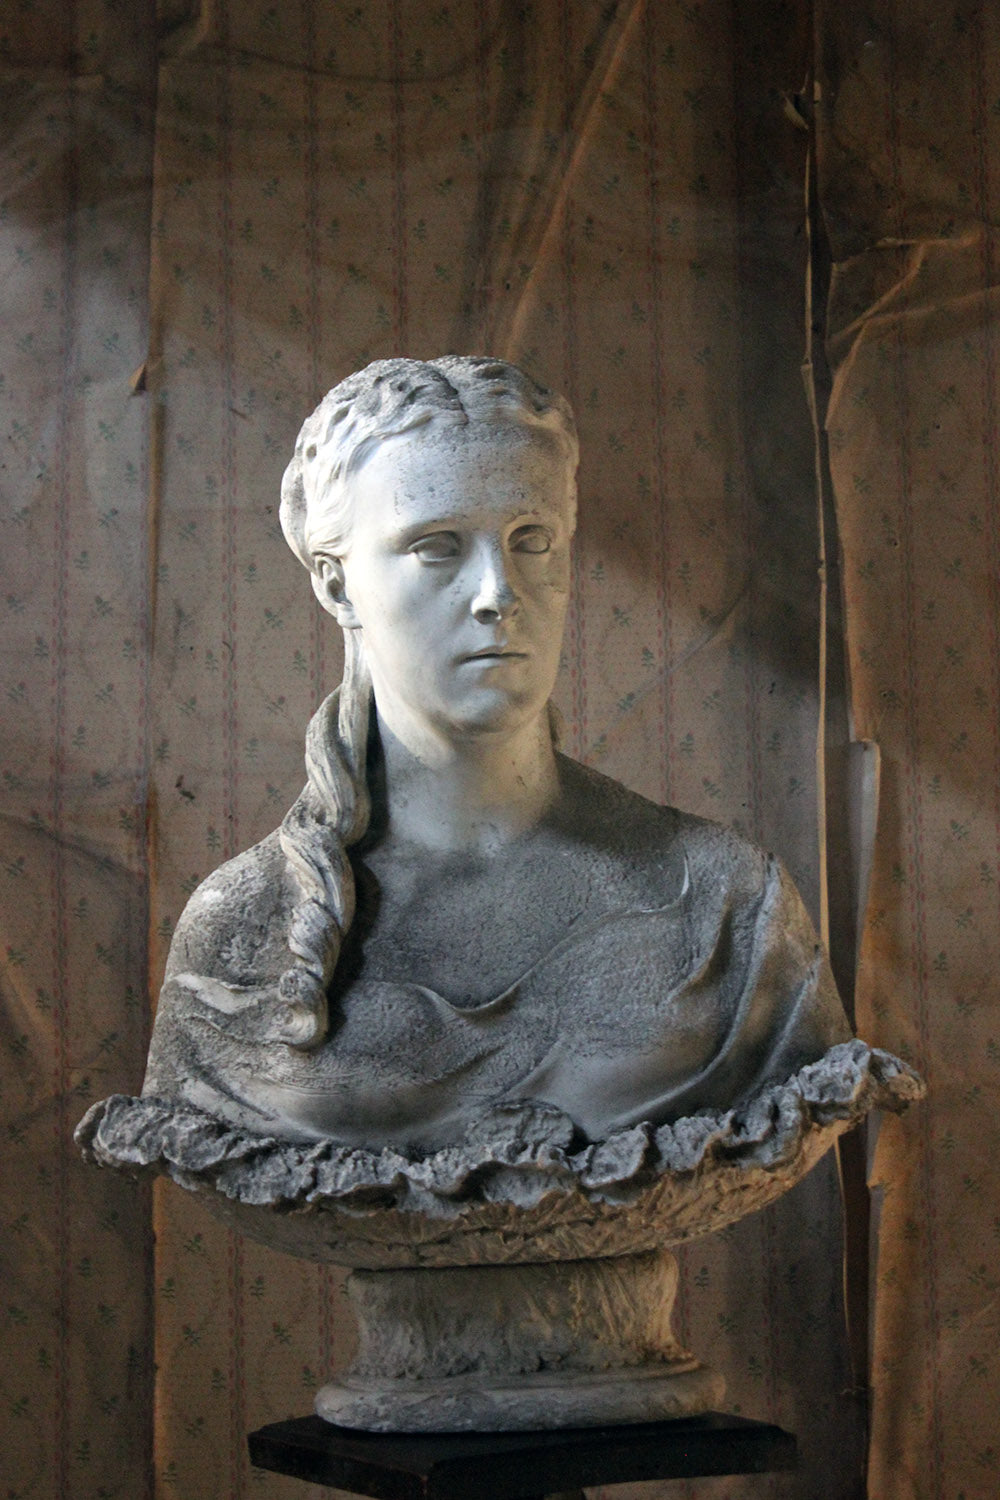 A Plaster Portrait Bust of a Maiden in the Style of Clytie c.1870-1900